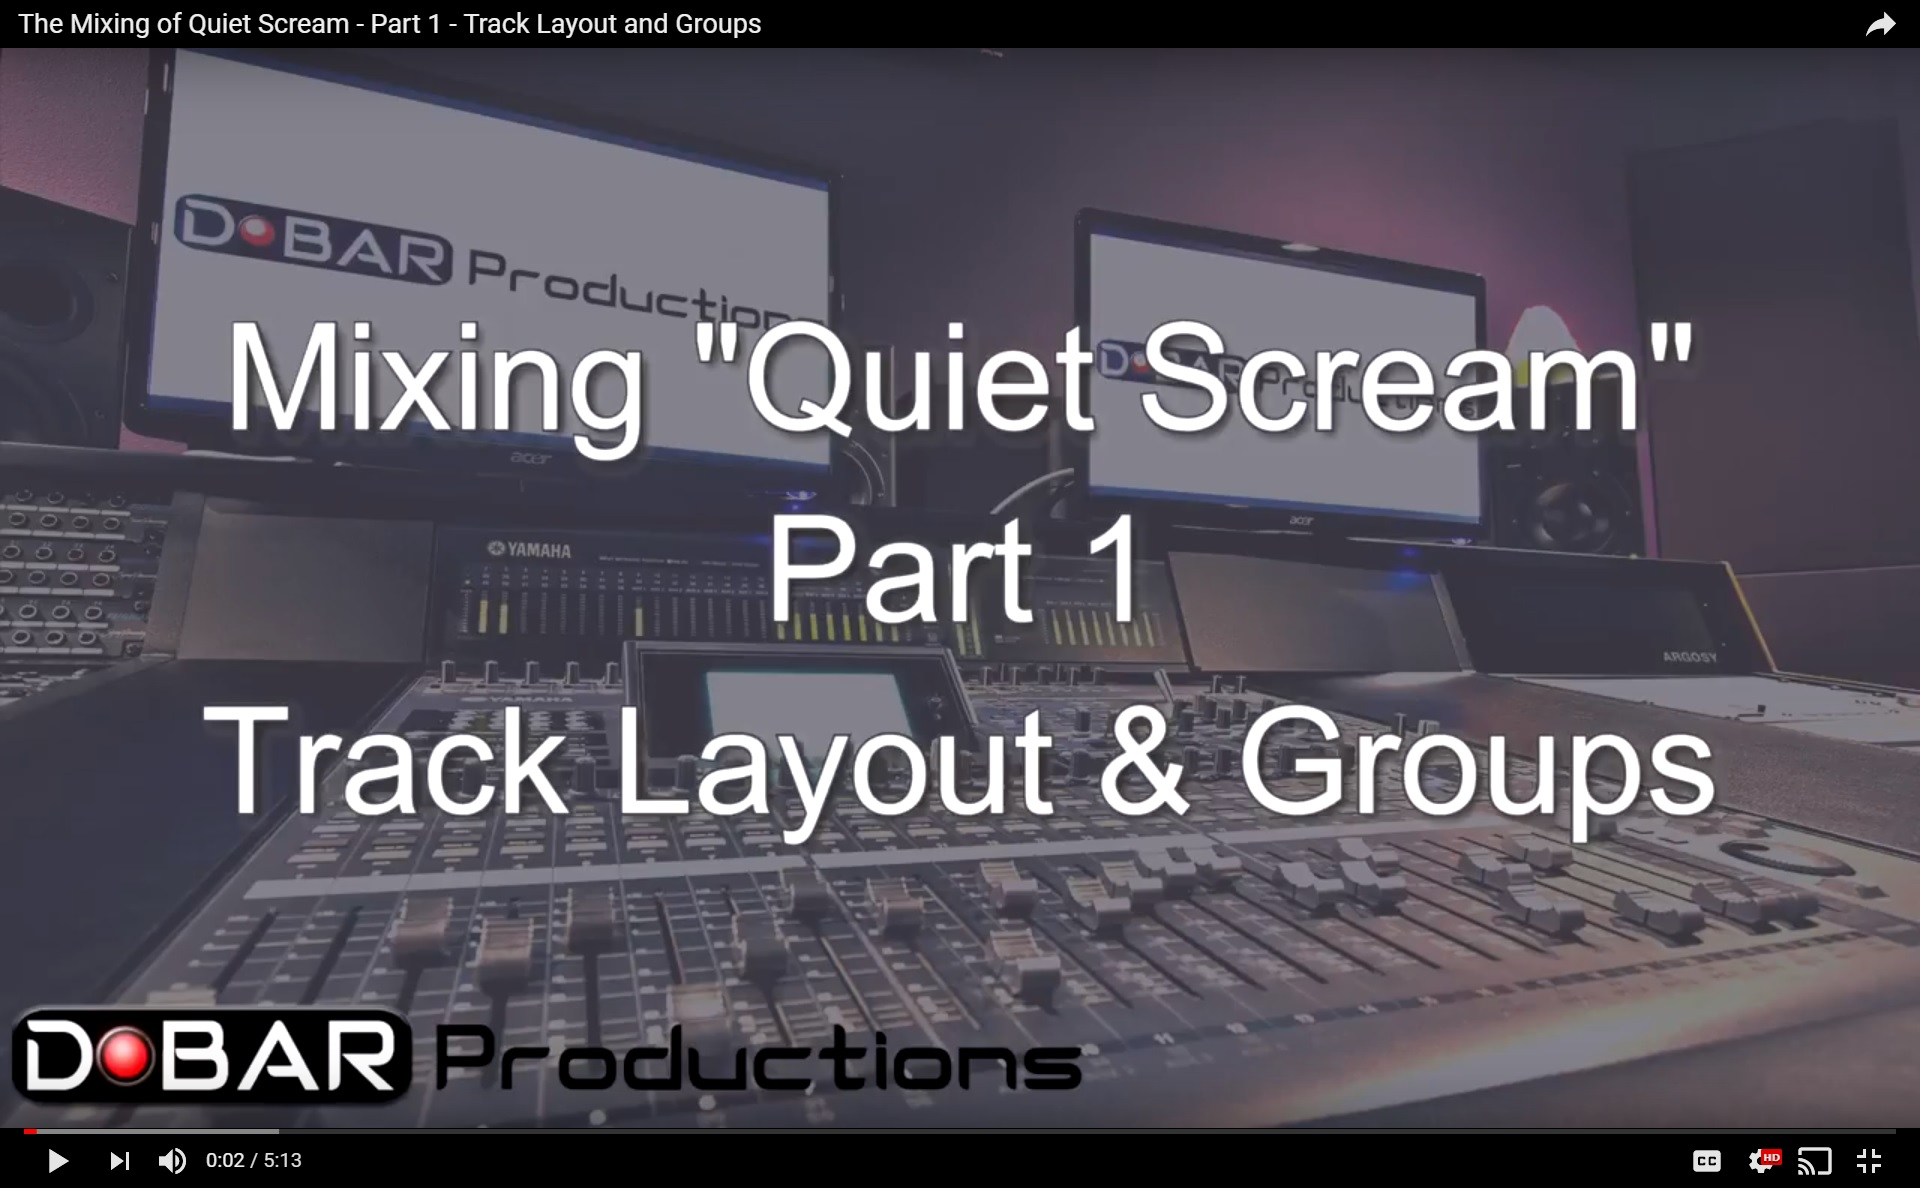 The Mixing of Quiet Scream - Part 1 - Track Layout and Groups